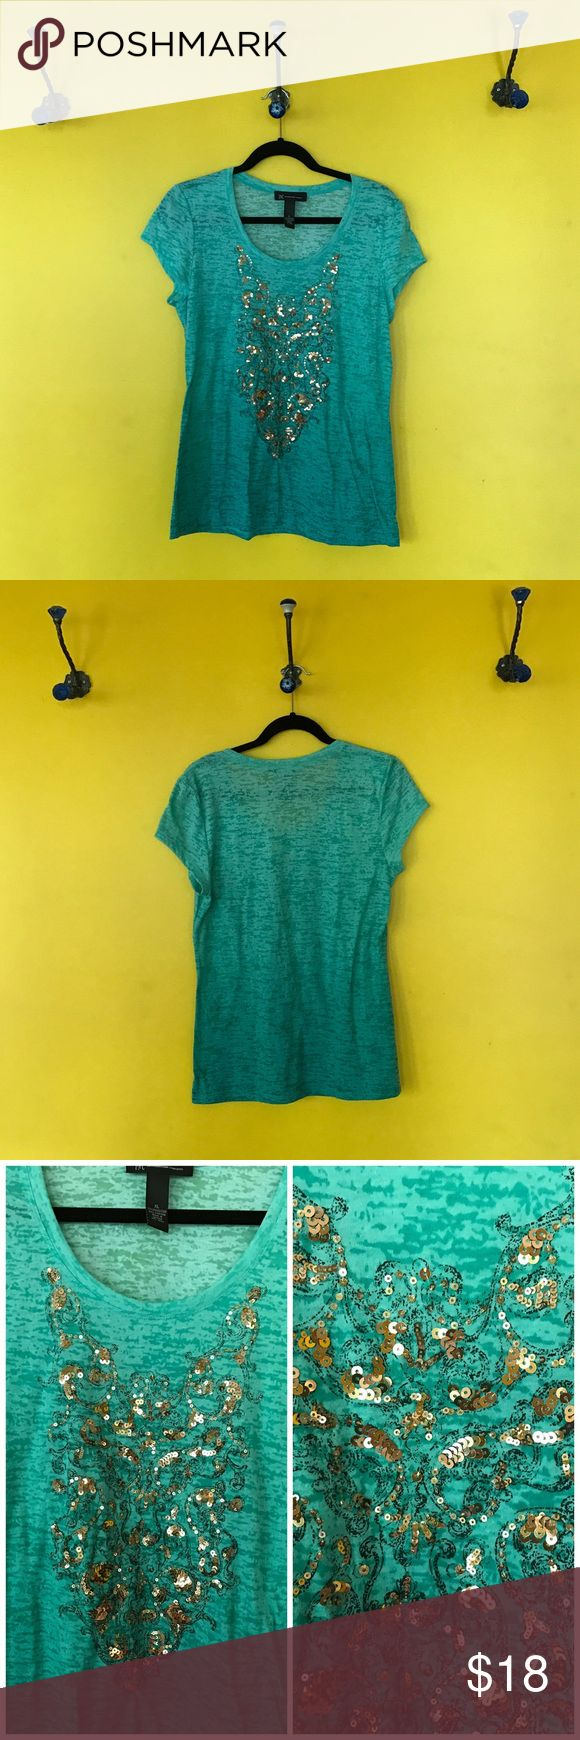 INC green short sleeve top with bronze accents INC green short sleeve top with bronze sequin accents. Gently used.  Perfect for summer  Approximate Measurements:  B: 19  L: 26 INC International Concepts Tops Tees - Short Sleeve